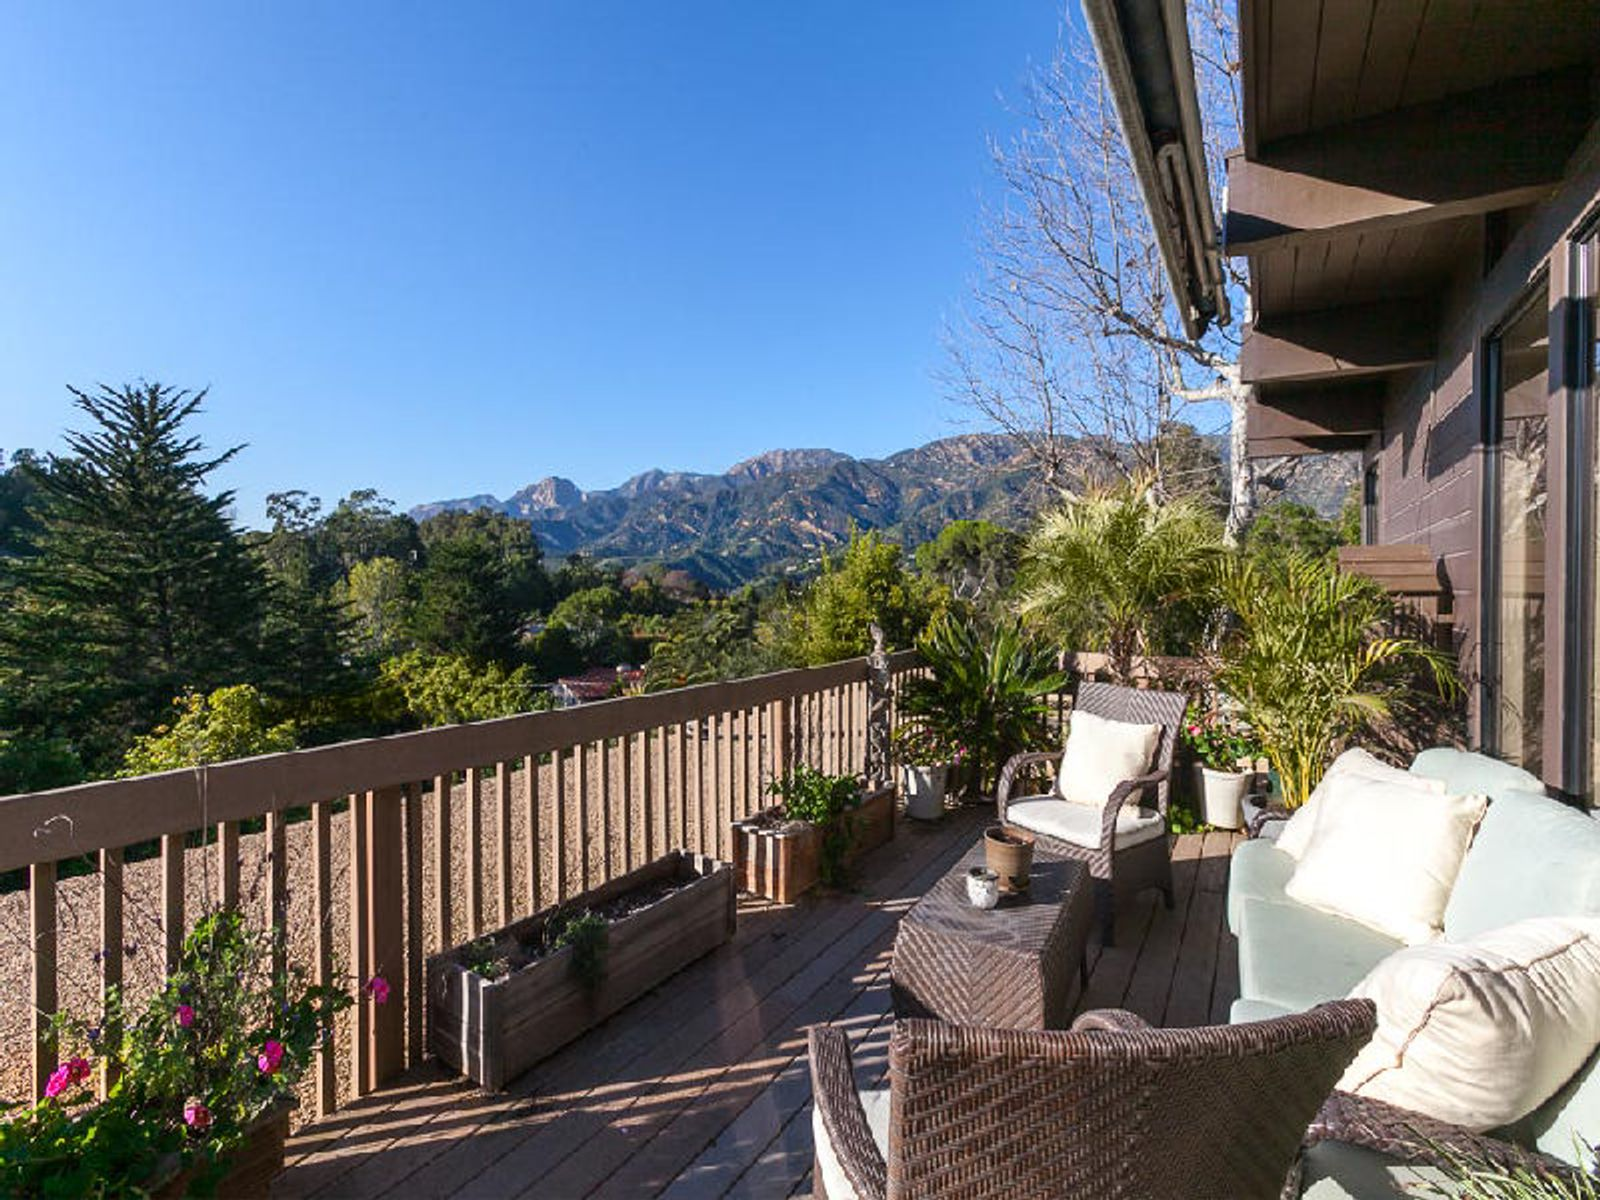 Master Bedroom Deck - Incredible Mountain View